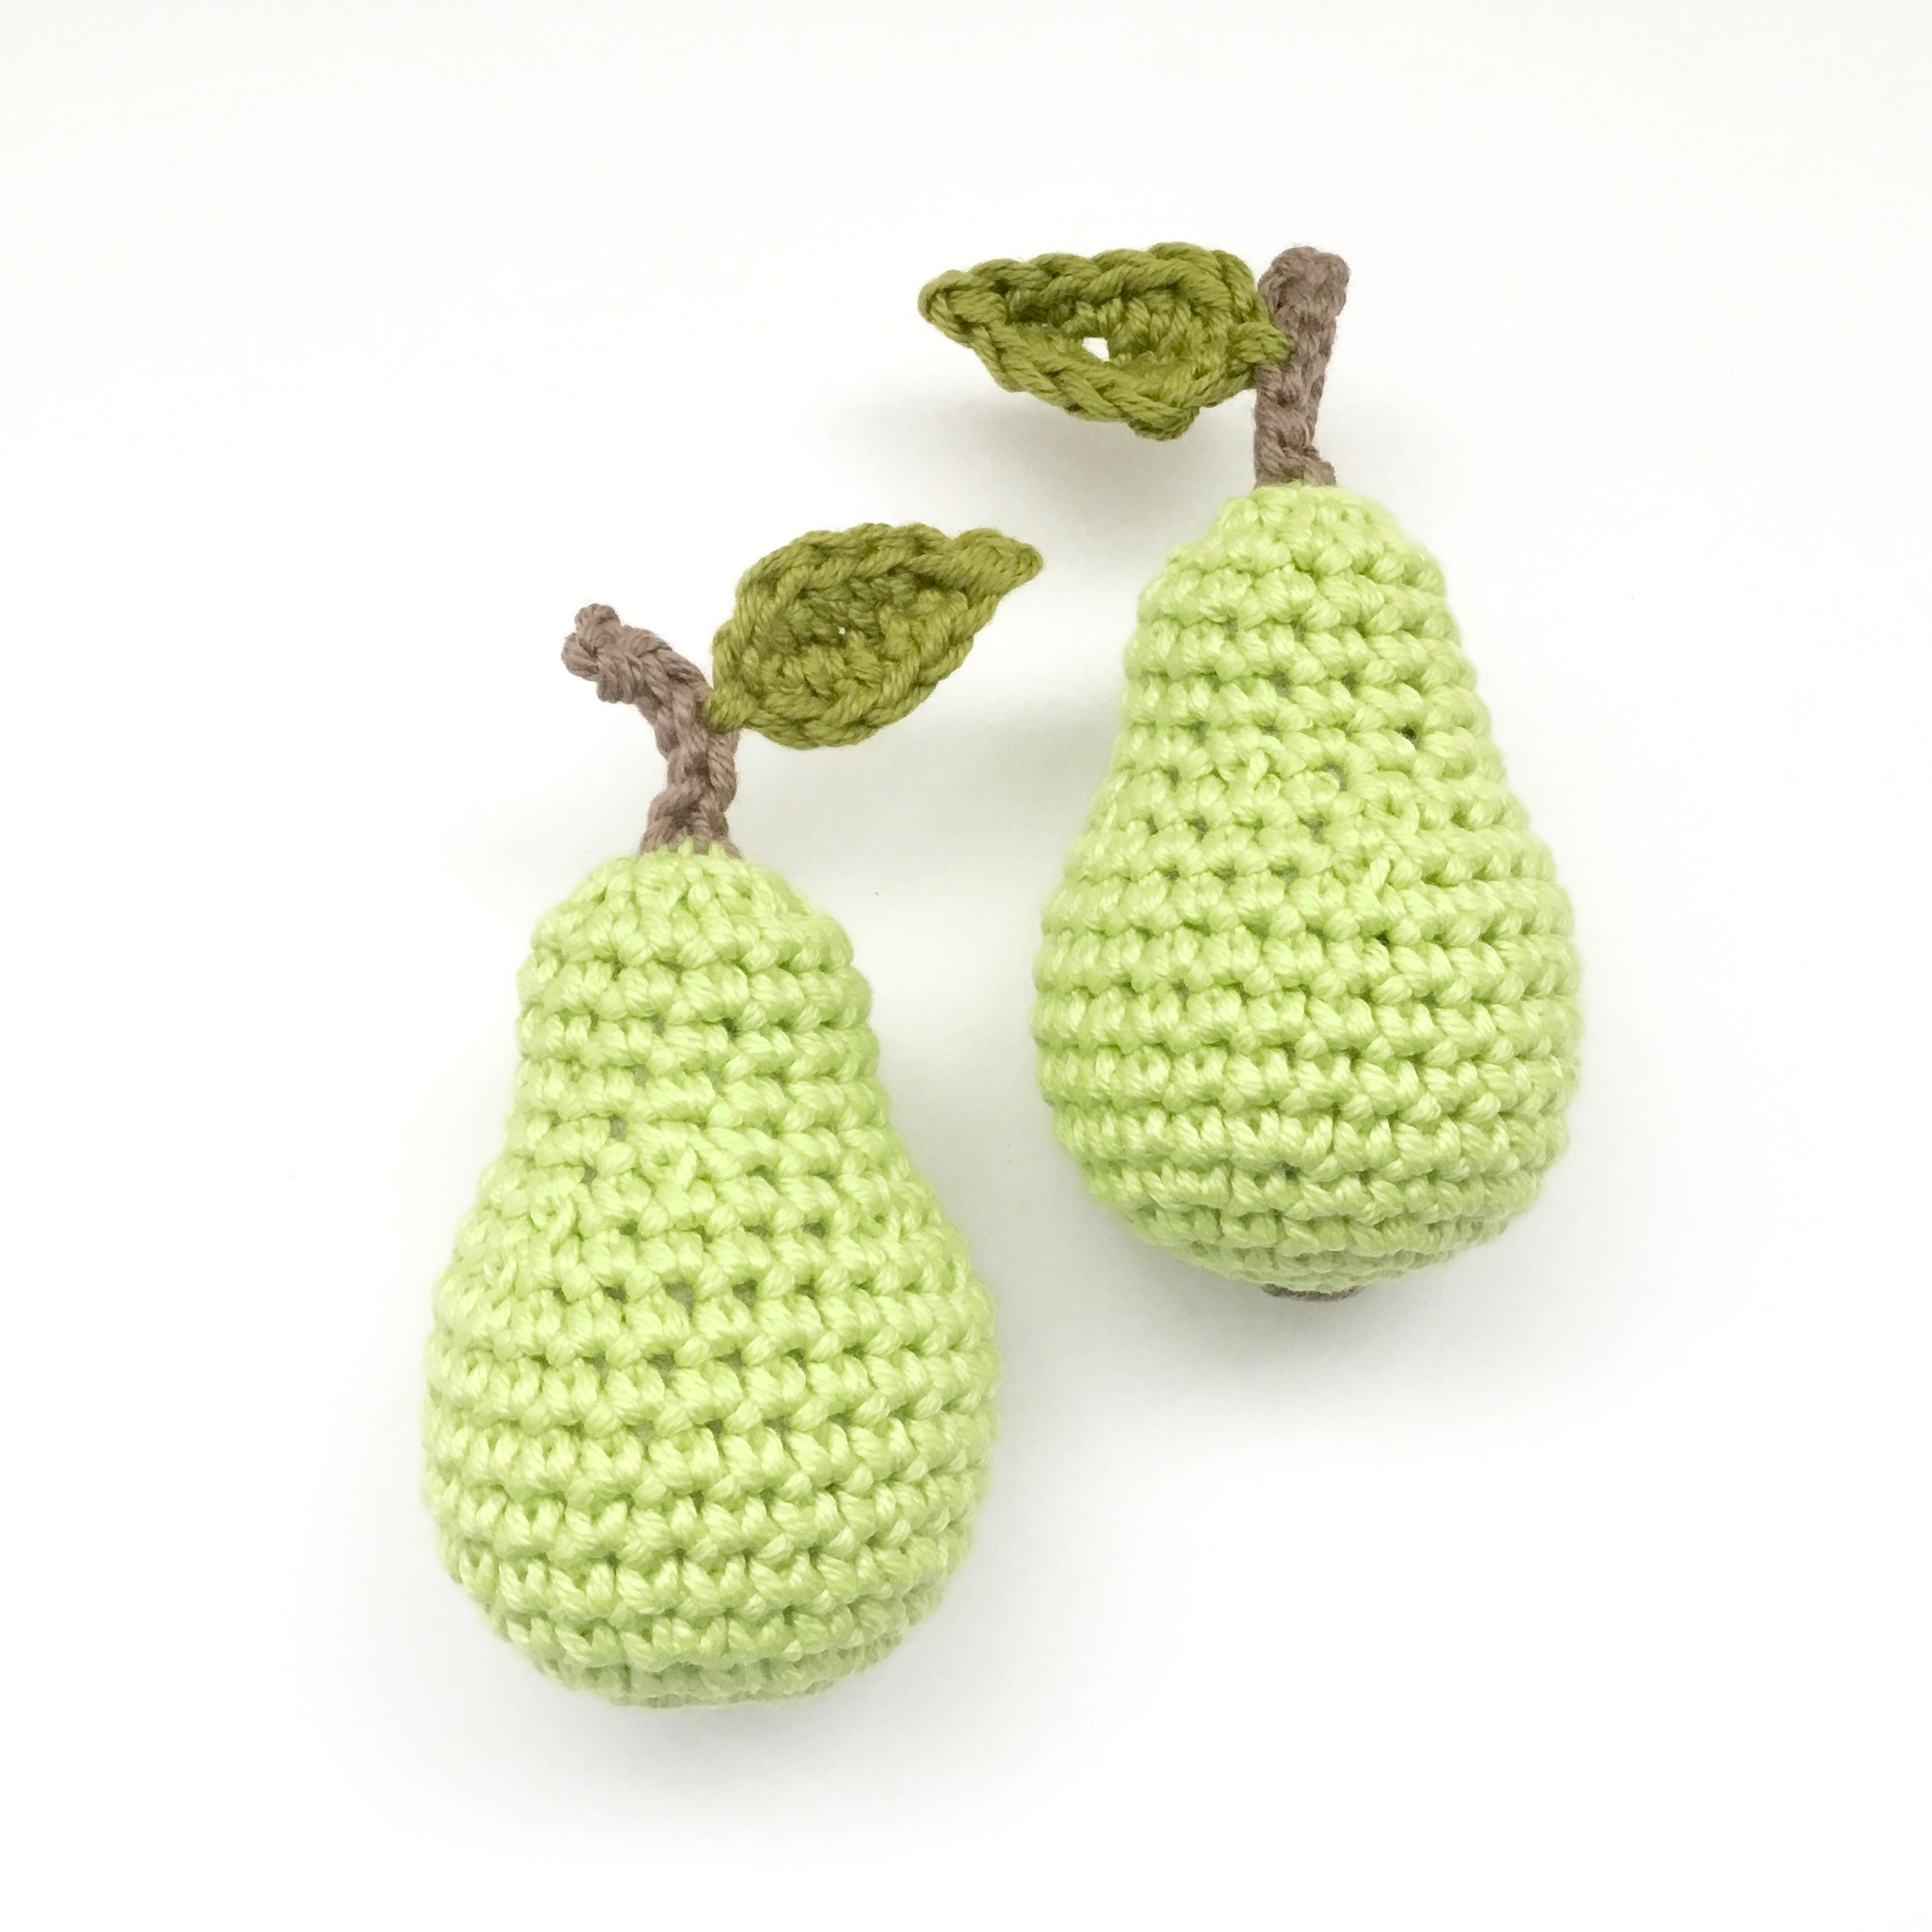 Partridge in a Pear Tree Crochet Pattern